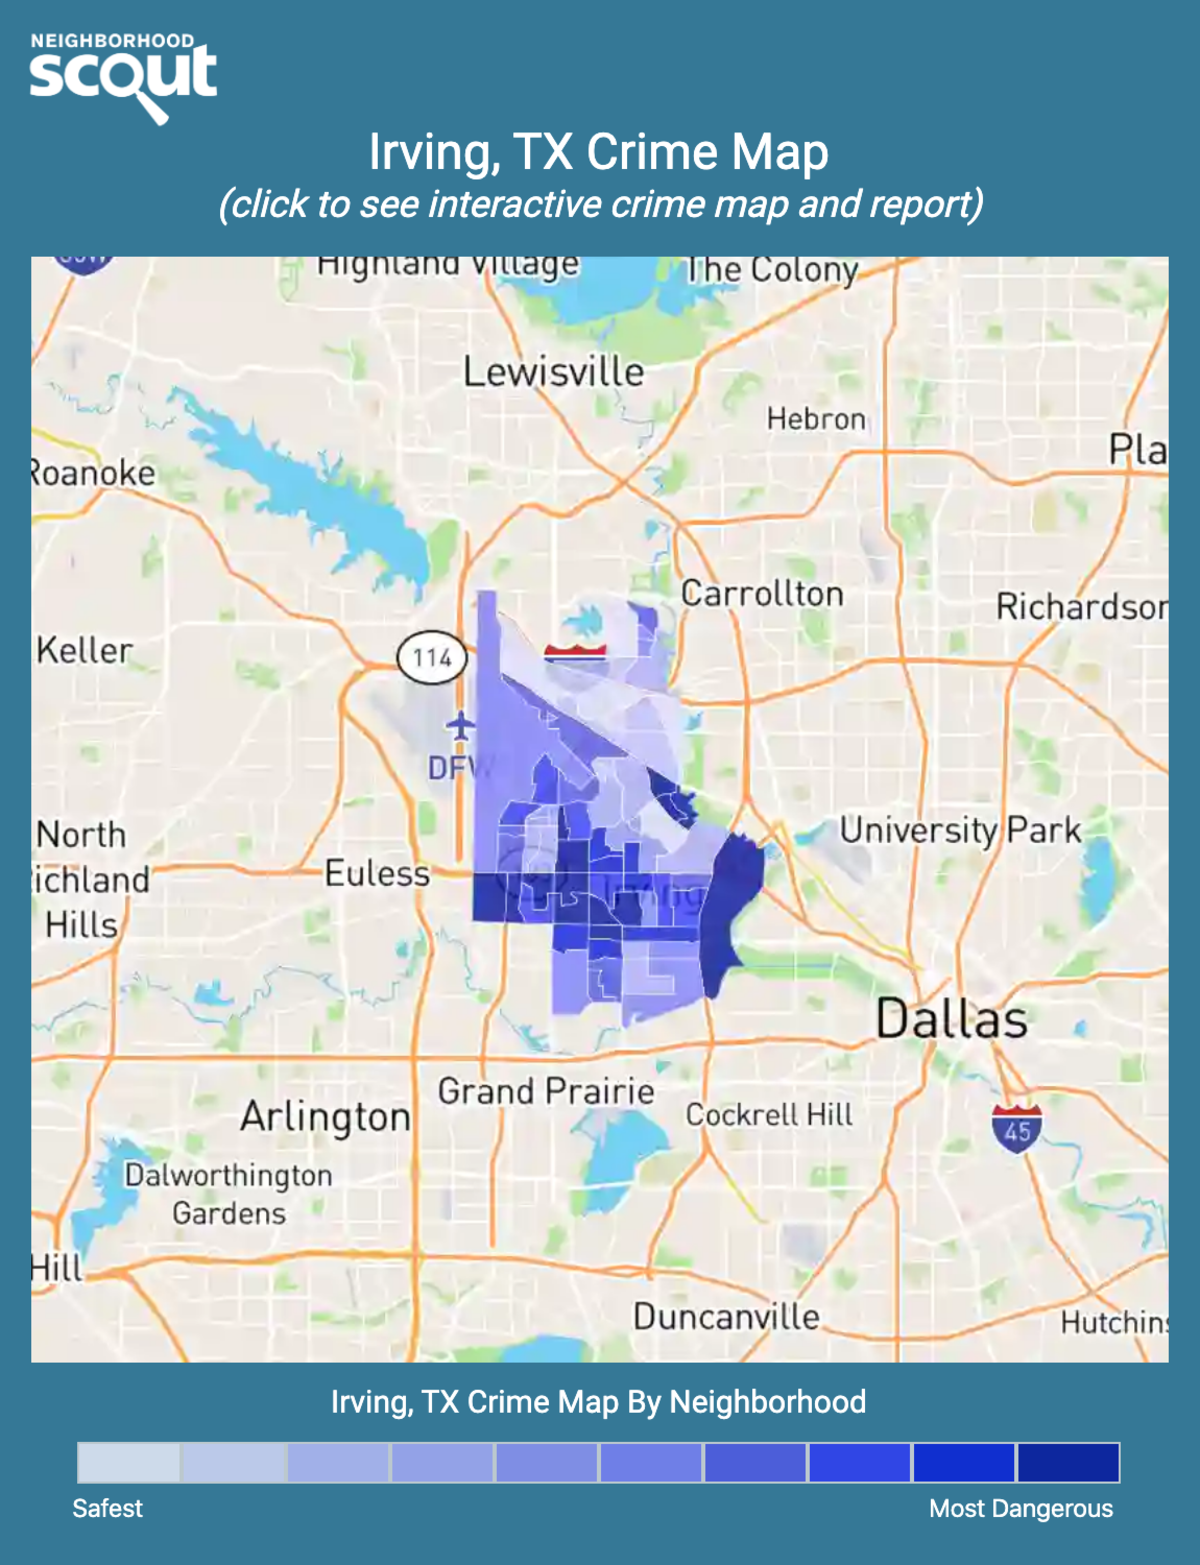 Irving, Texas crime map